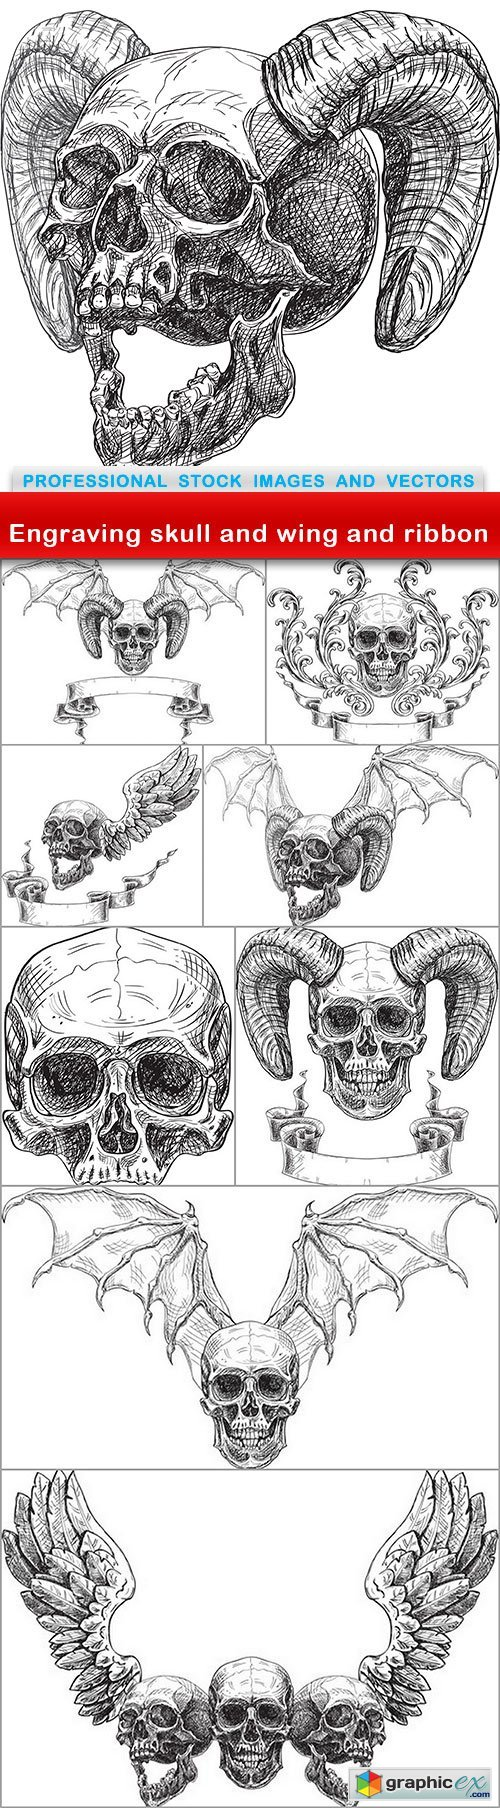 Engraving skull and wing and ribbon - 9 EPS